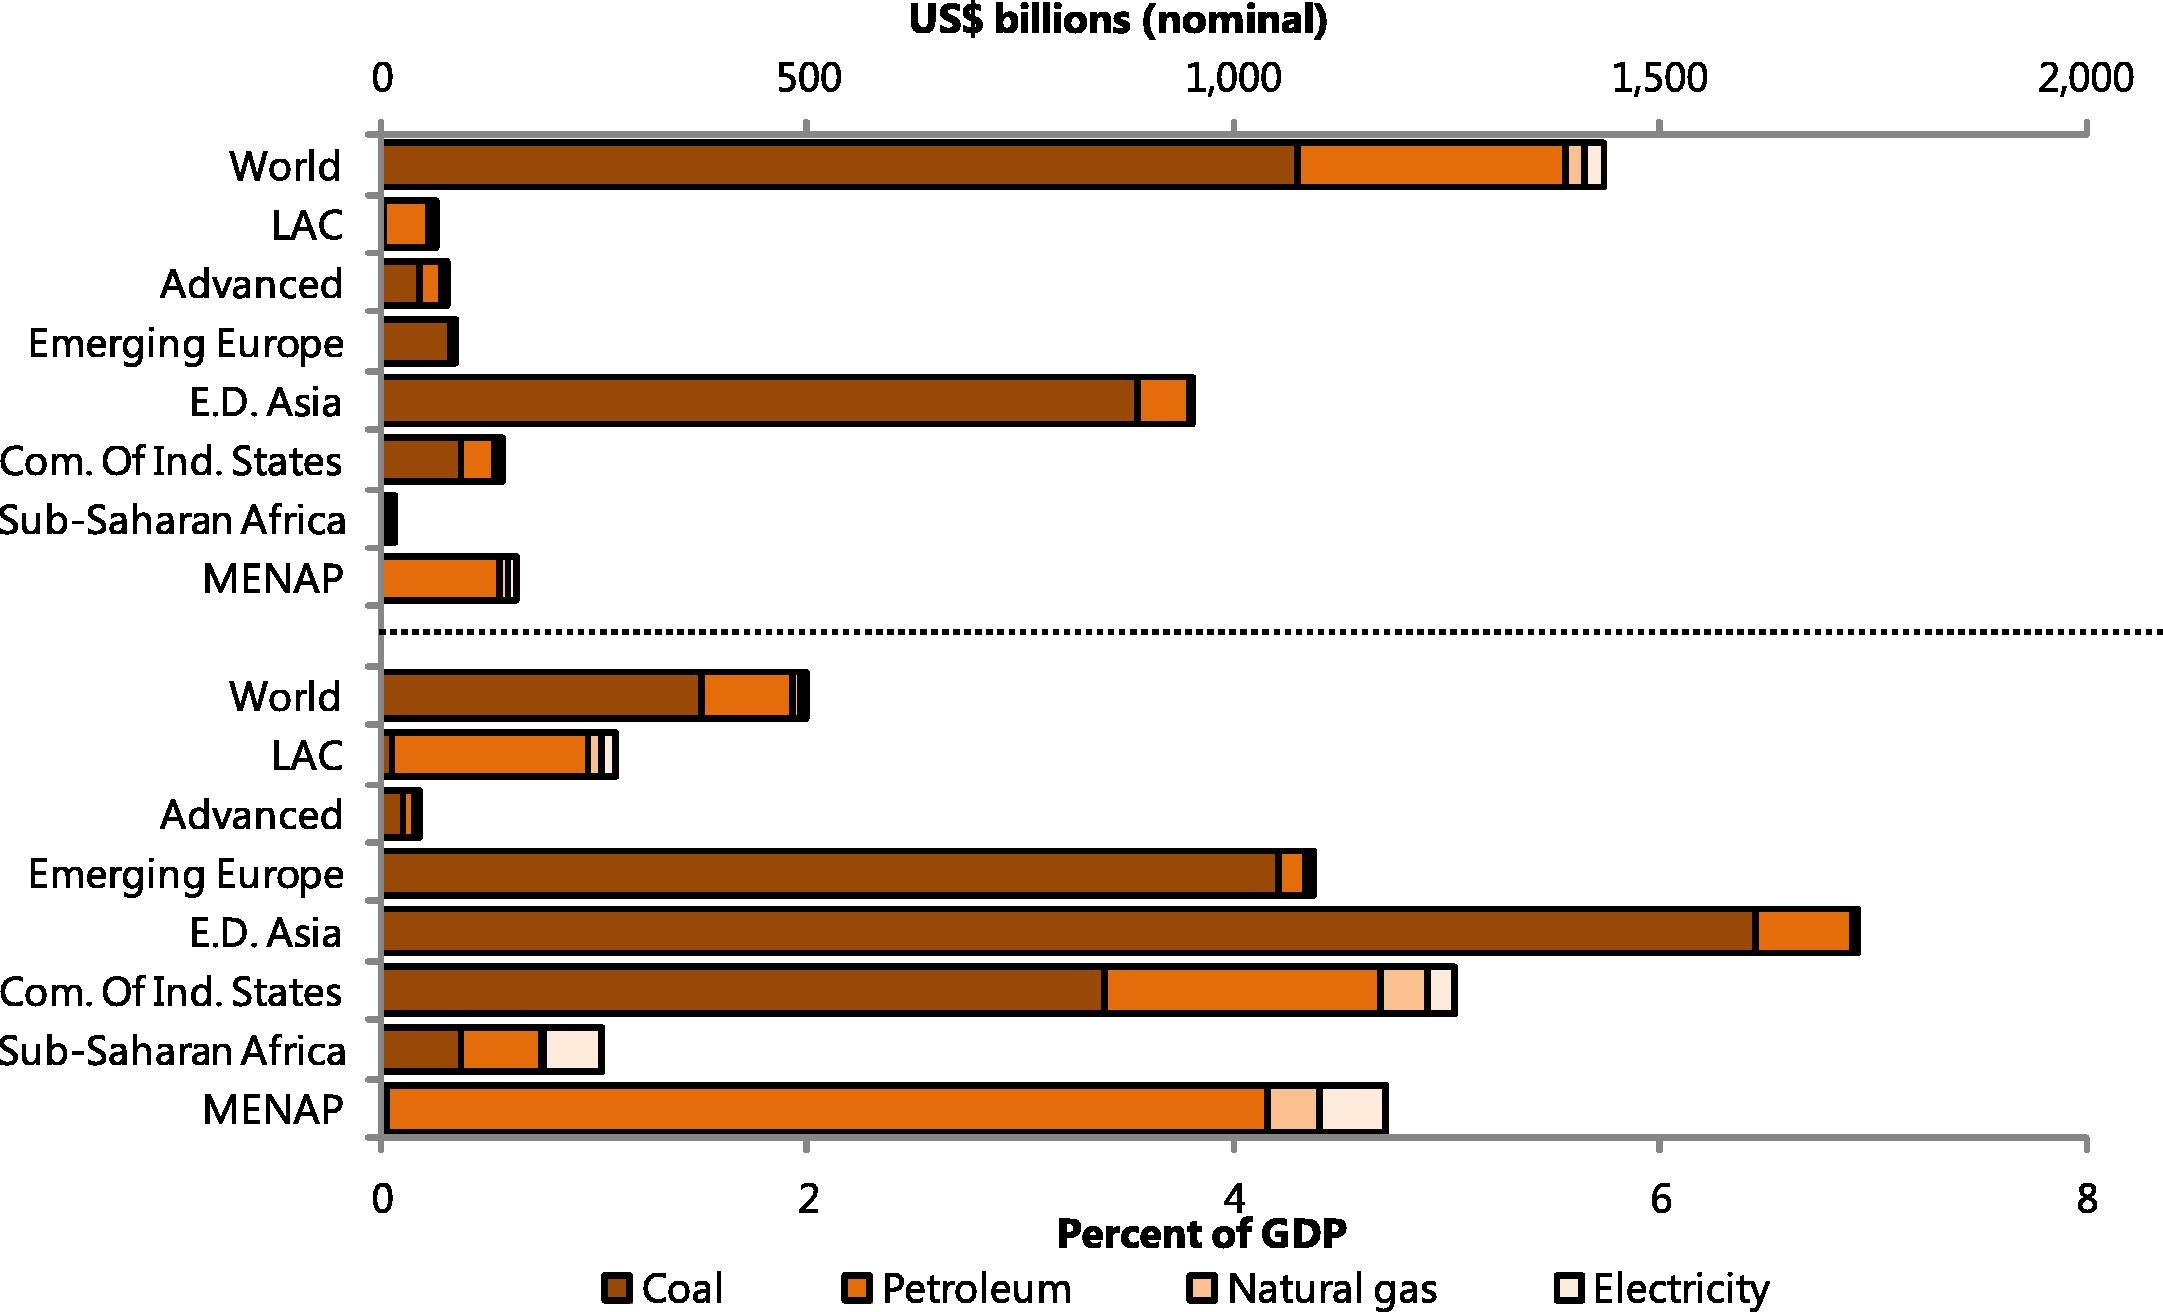 Fossil Fuel Subsidies: Welfare Gain from Removing Energy Subsidies, 2013